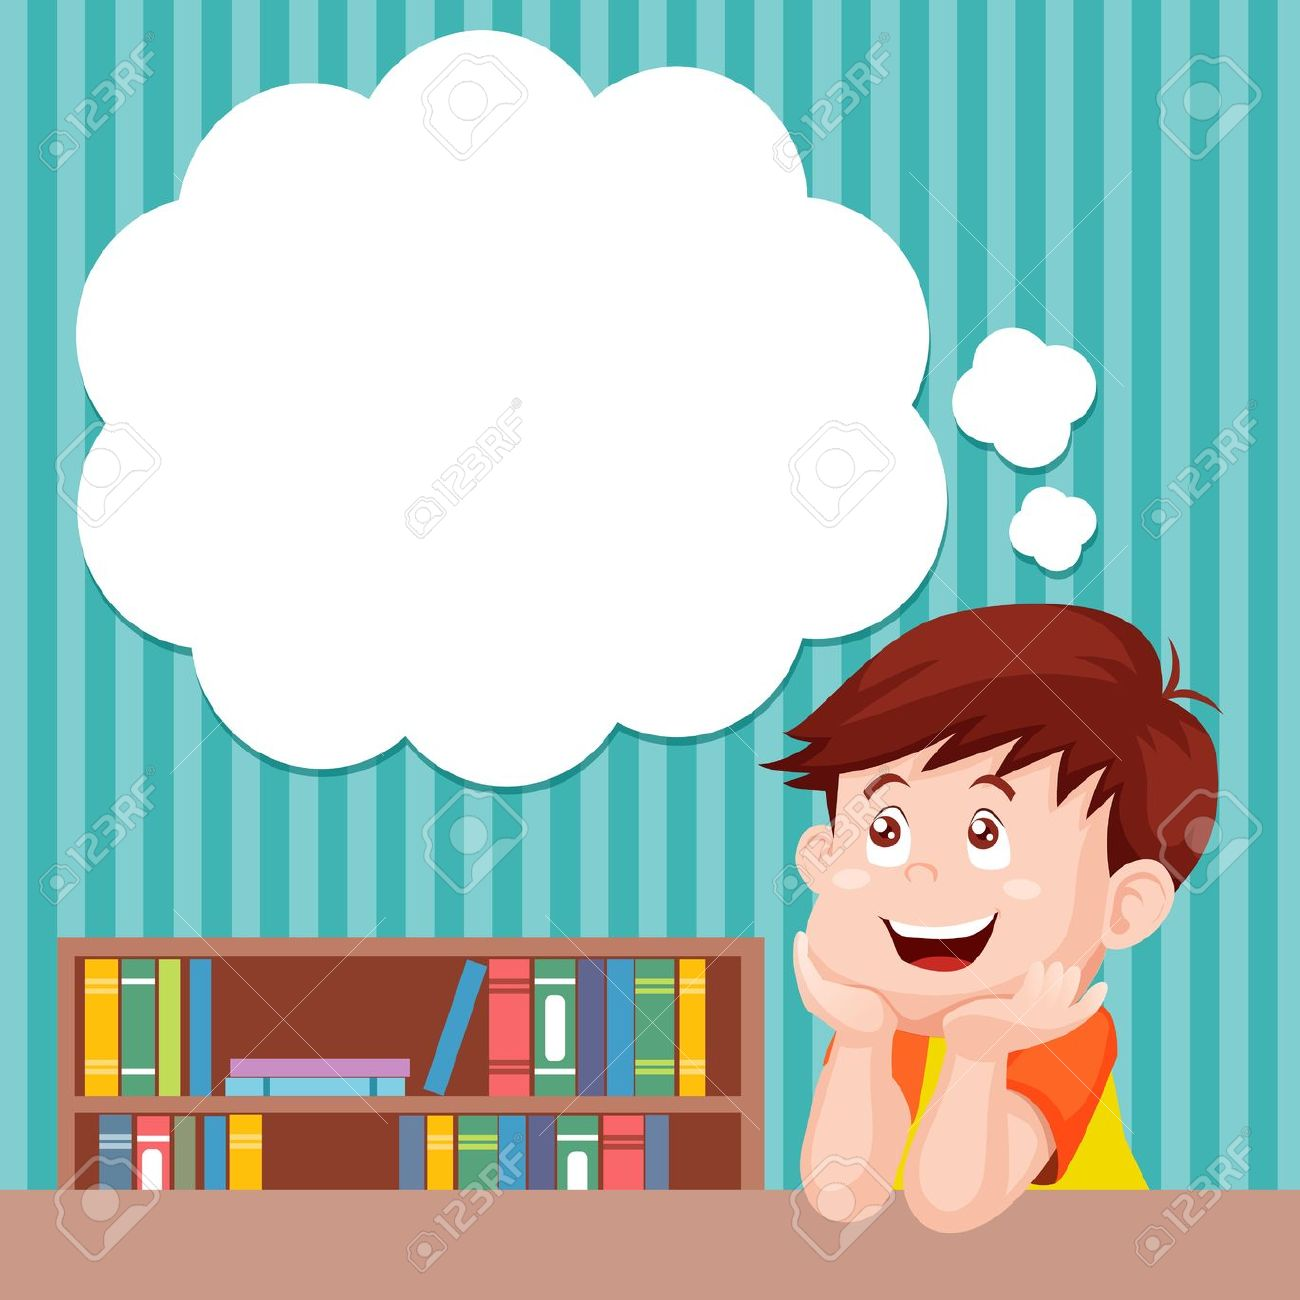 Cartoon Boy Thinking With White Bubble For Text Royalty Free